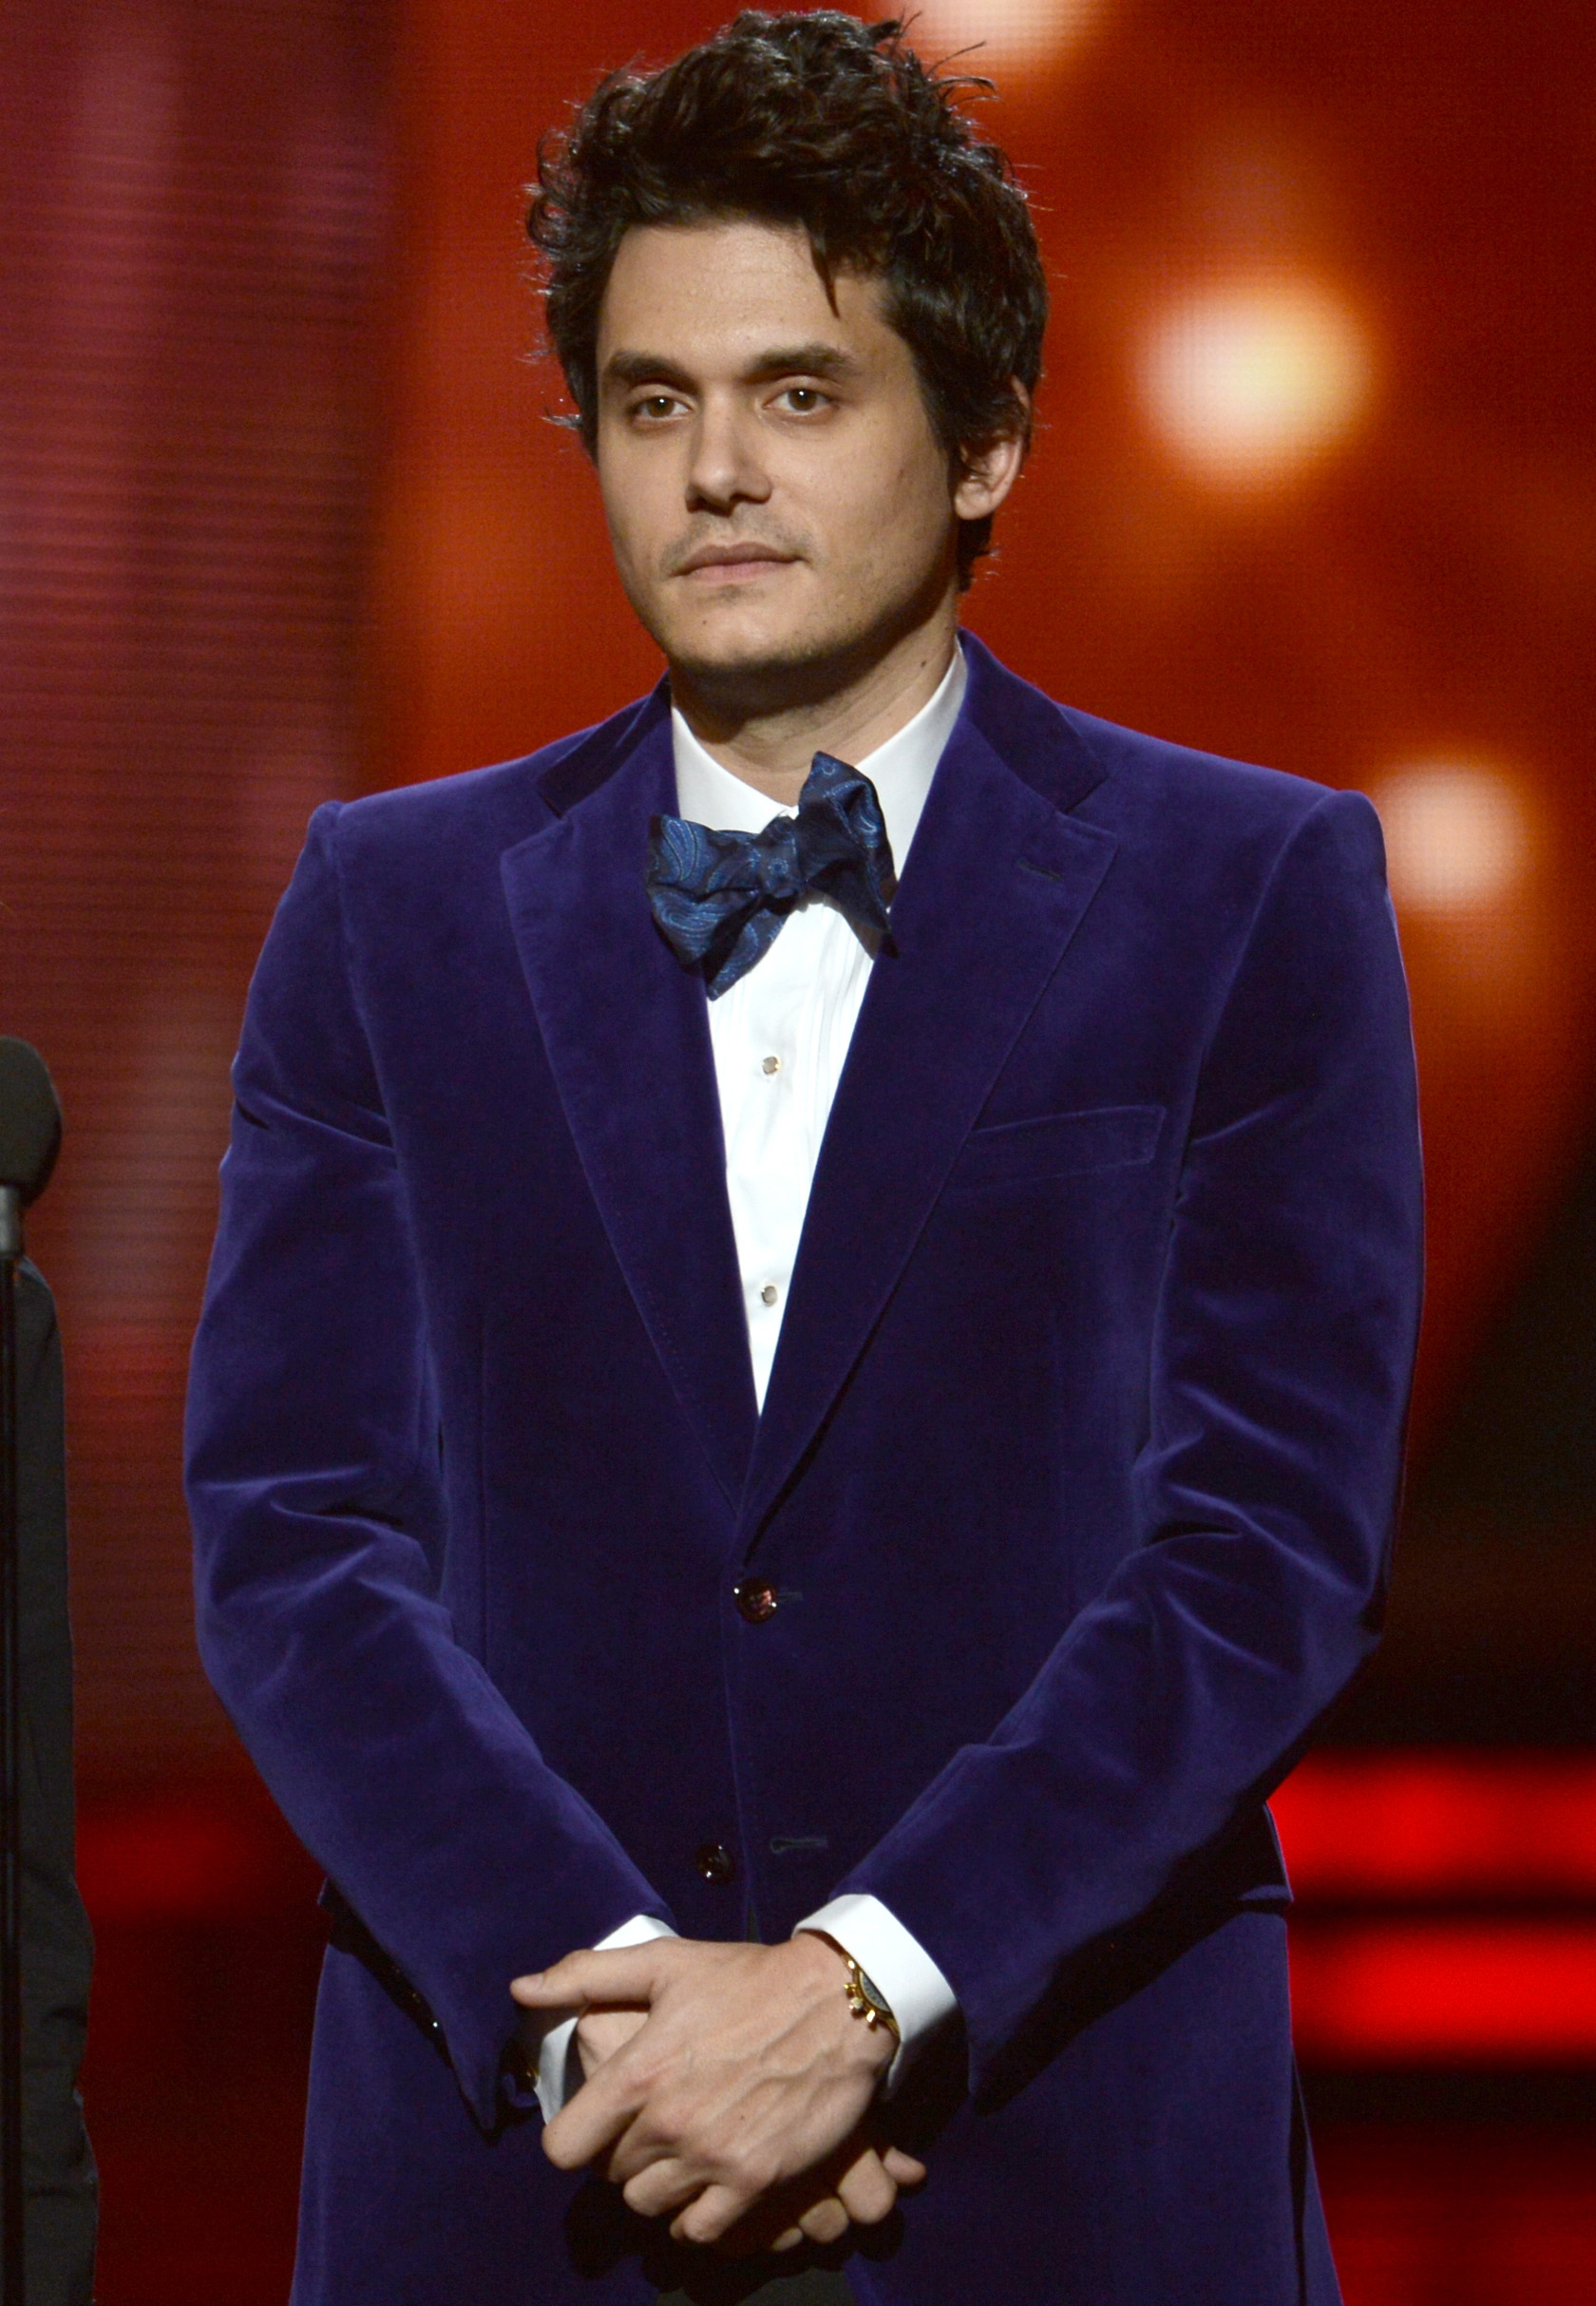 John Mayer wore a blue blazer.